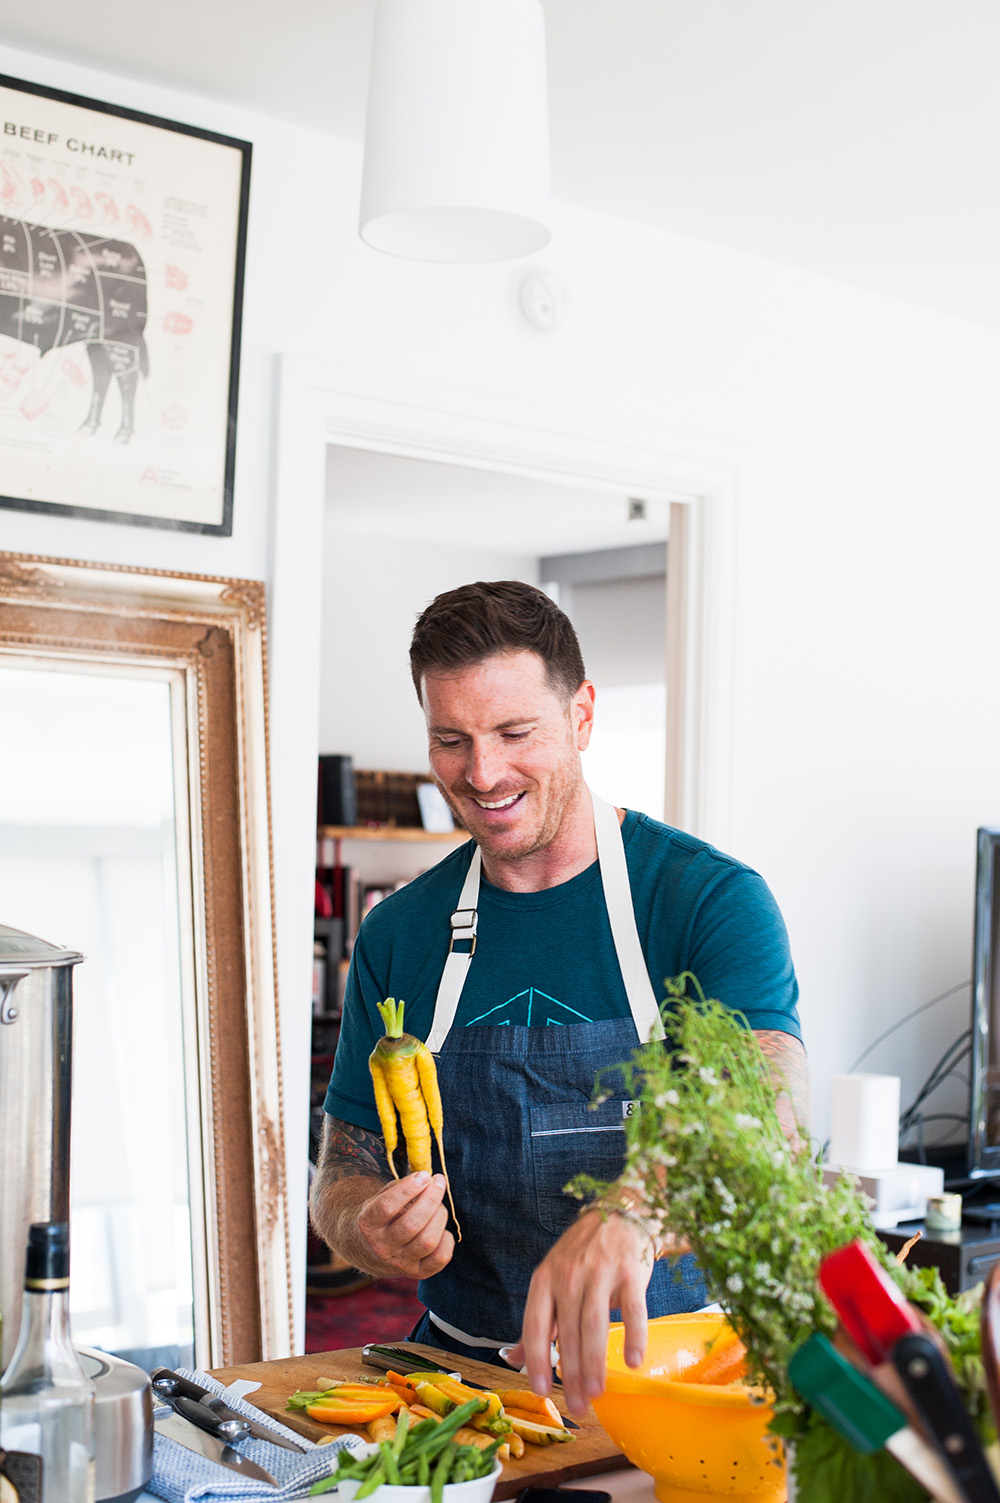 Seamus Mullen laughs at a strangely shaped golden carrot